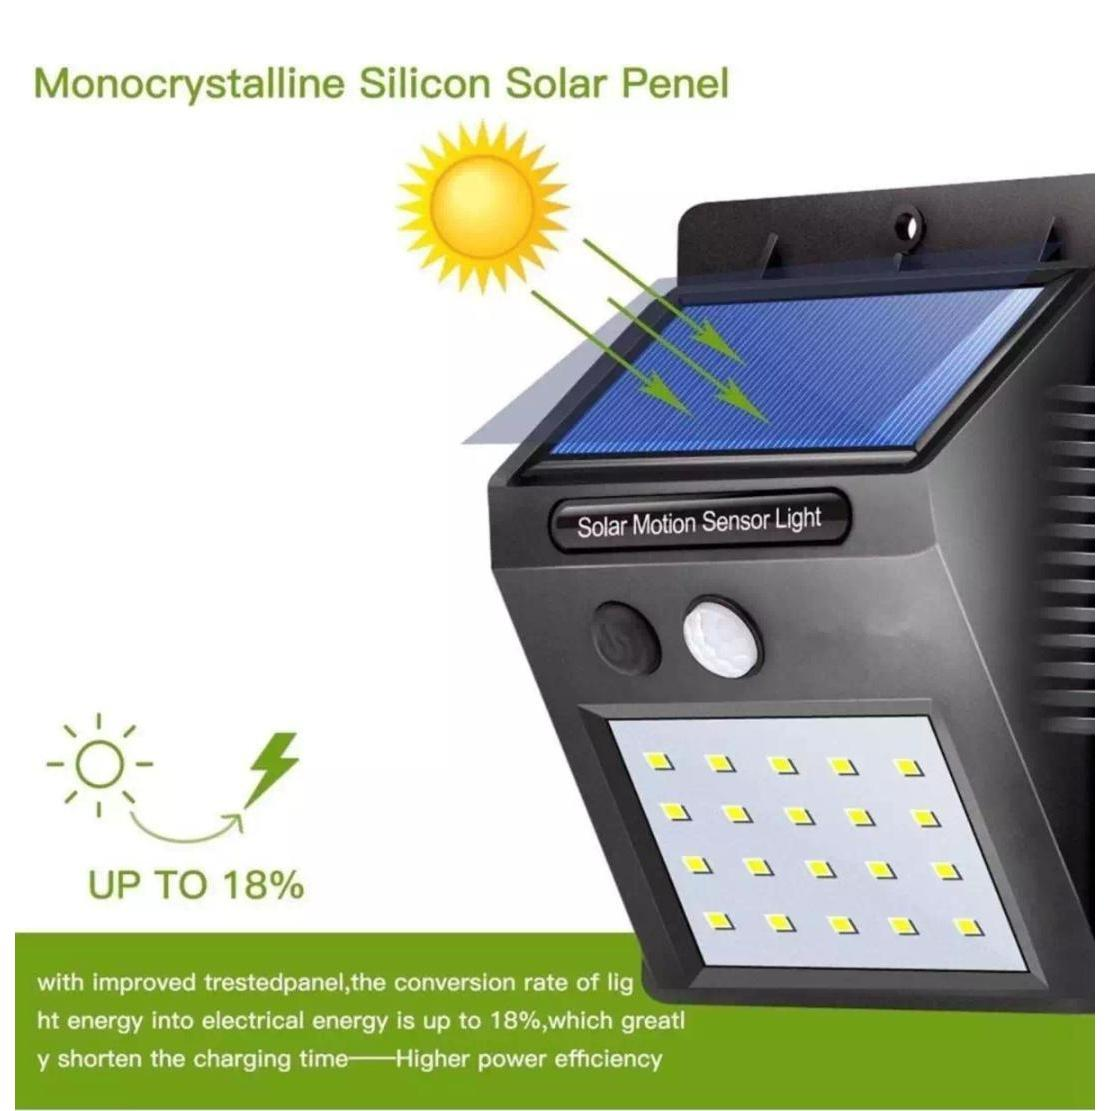 Outdoor Lighting For Sale Lights Prices Brands Review Have Replaced An Outside Security Pir Light Twin New Sensor Wall 20 Led Waterproof Rechargeable Solar Power Motion Garden Lamp